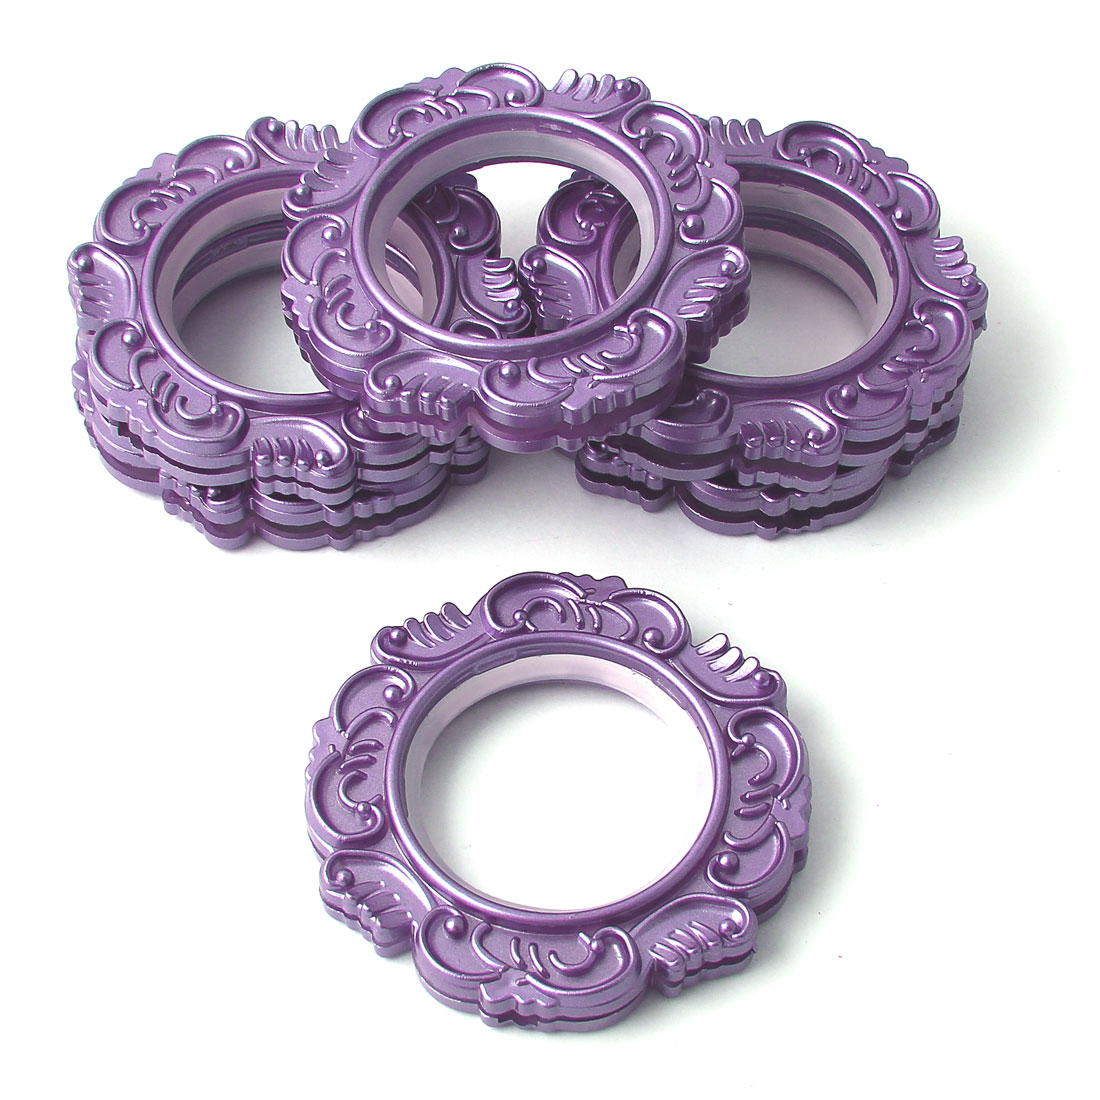 Household Foral Print Plastic Round Curtain Rings 45mm Inside Dia Purple 6 Pcs